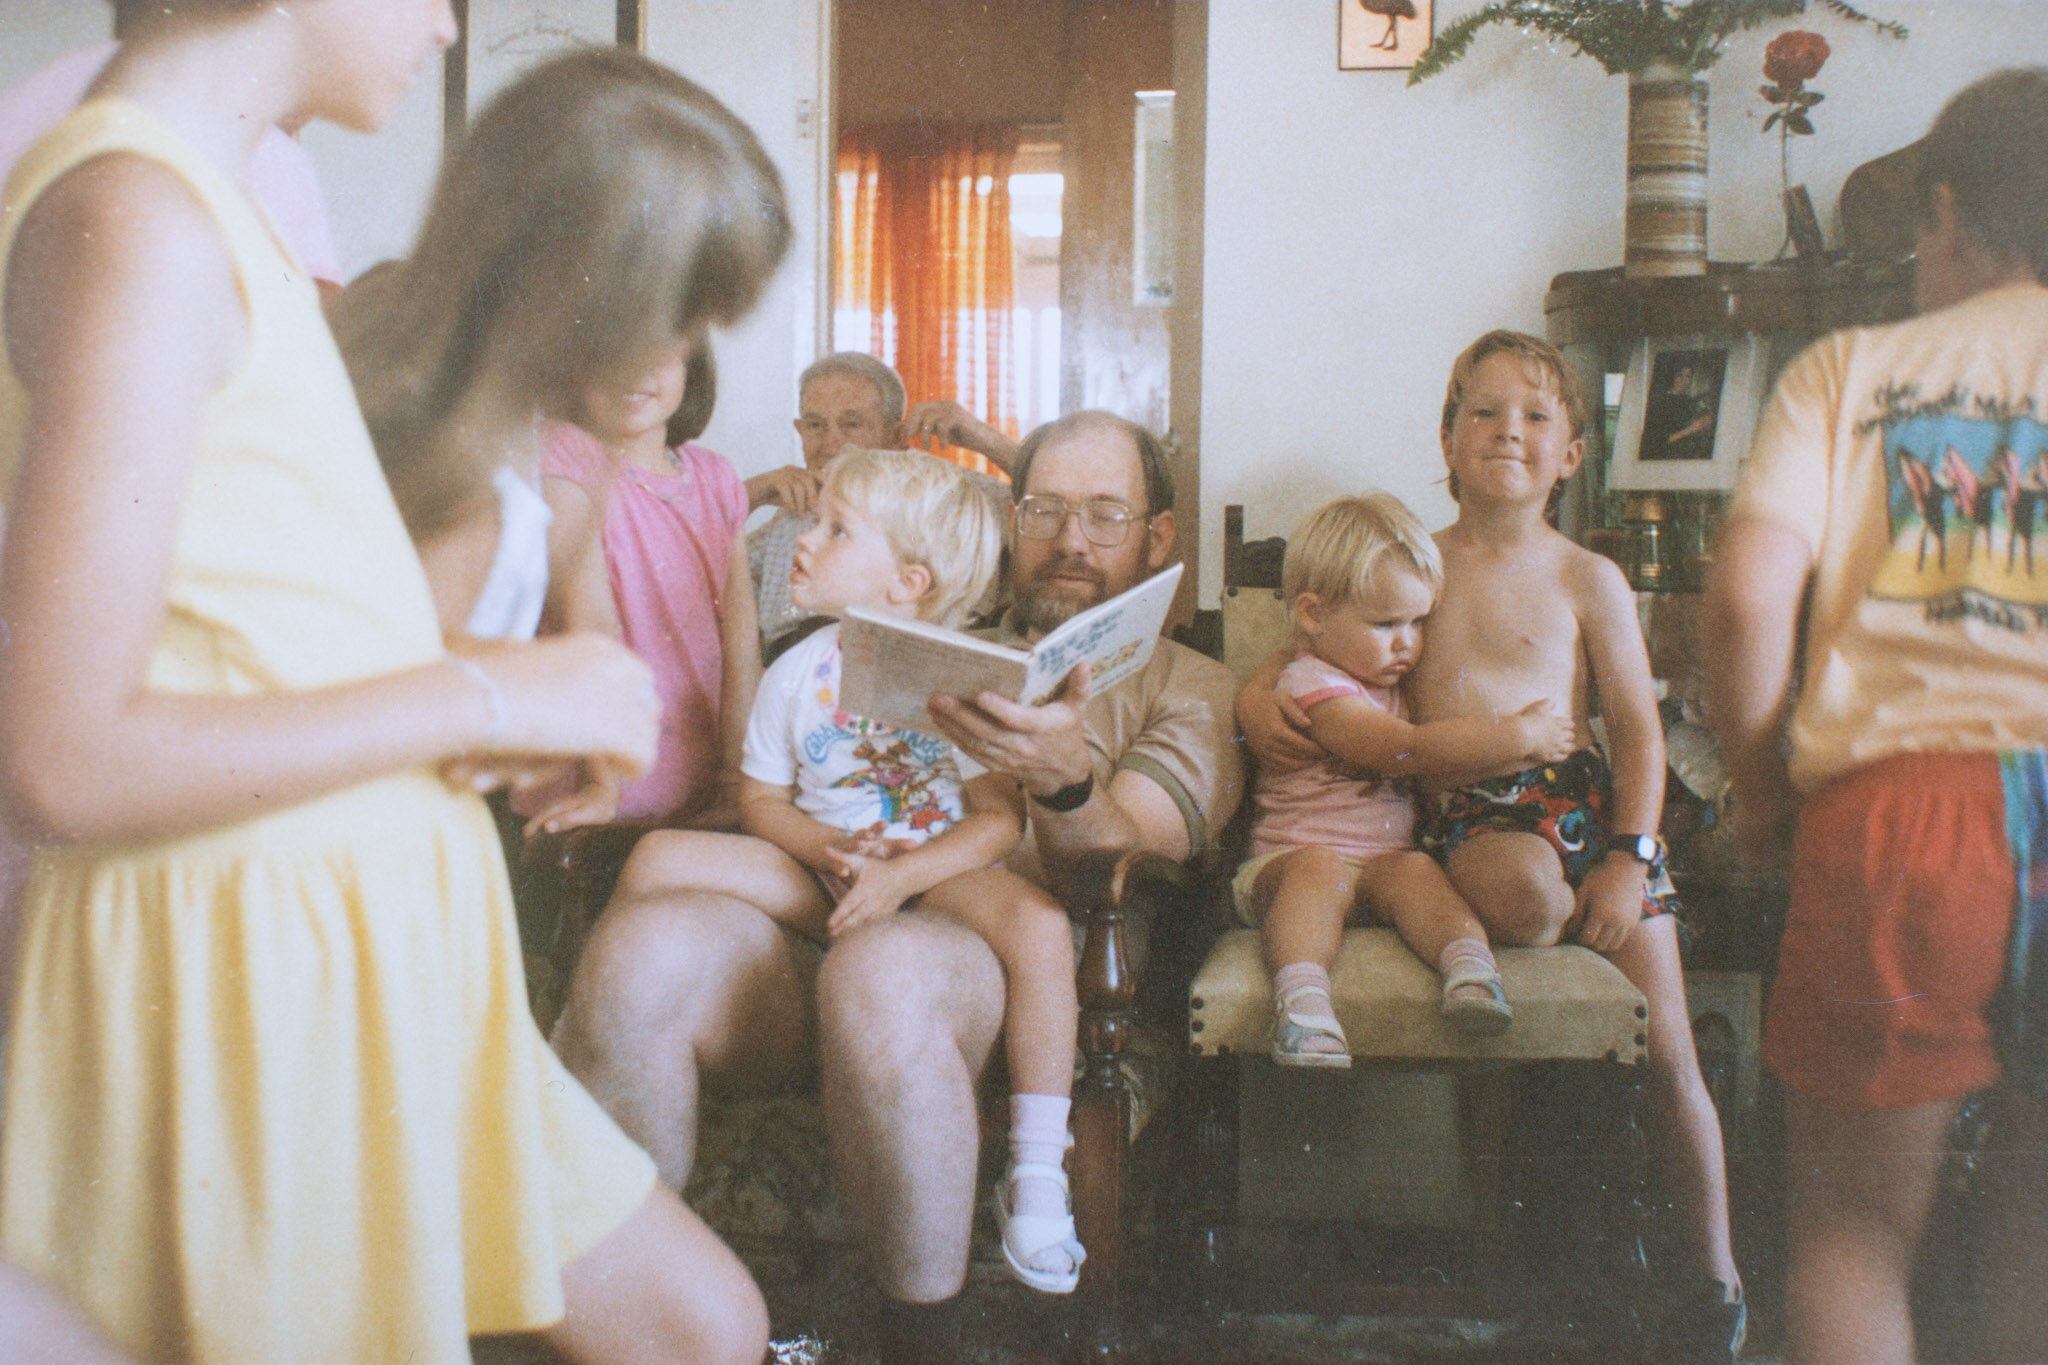 This is my uncle, reading to all the cousins after a typical family lunch. I'm the little girl in pink, my arms wrapped tightly around my older cousin.